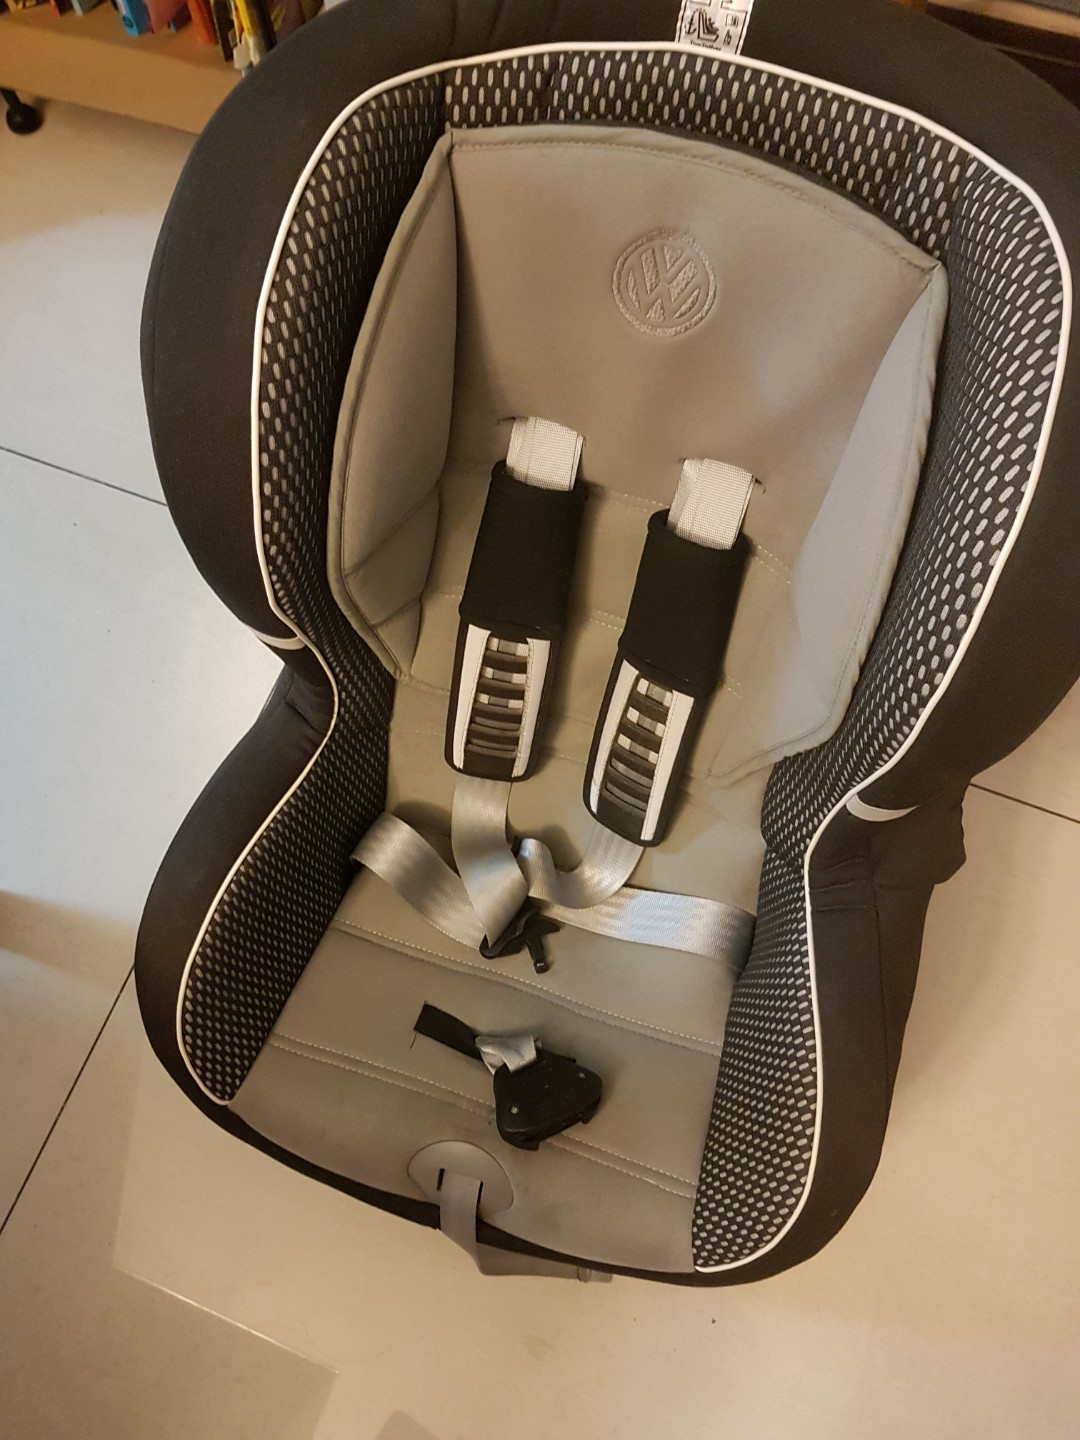 Volkswagen Car Seat With Isofix Car Accessories Accessories On